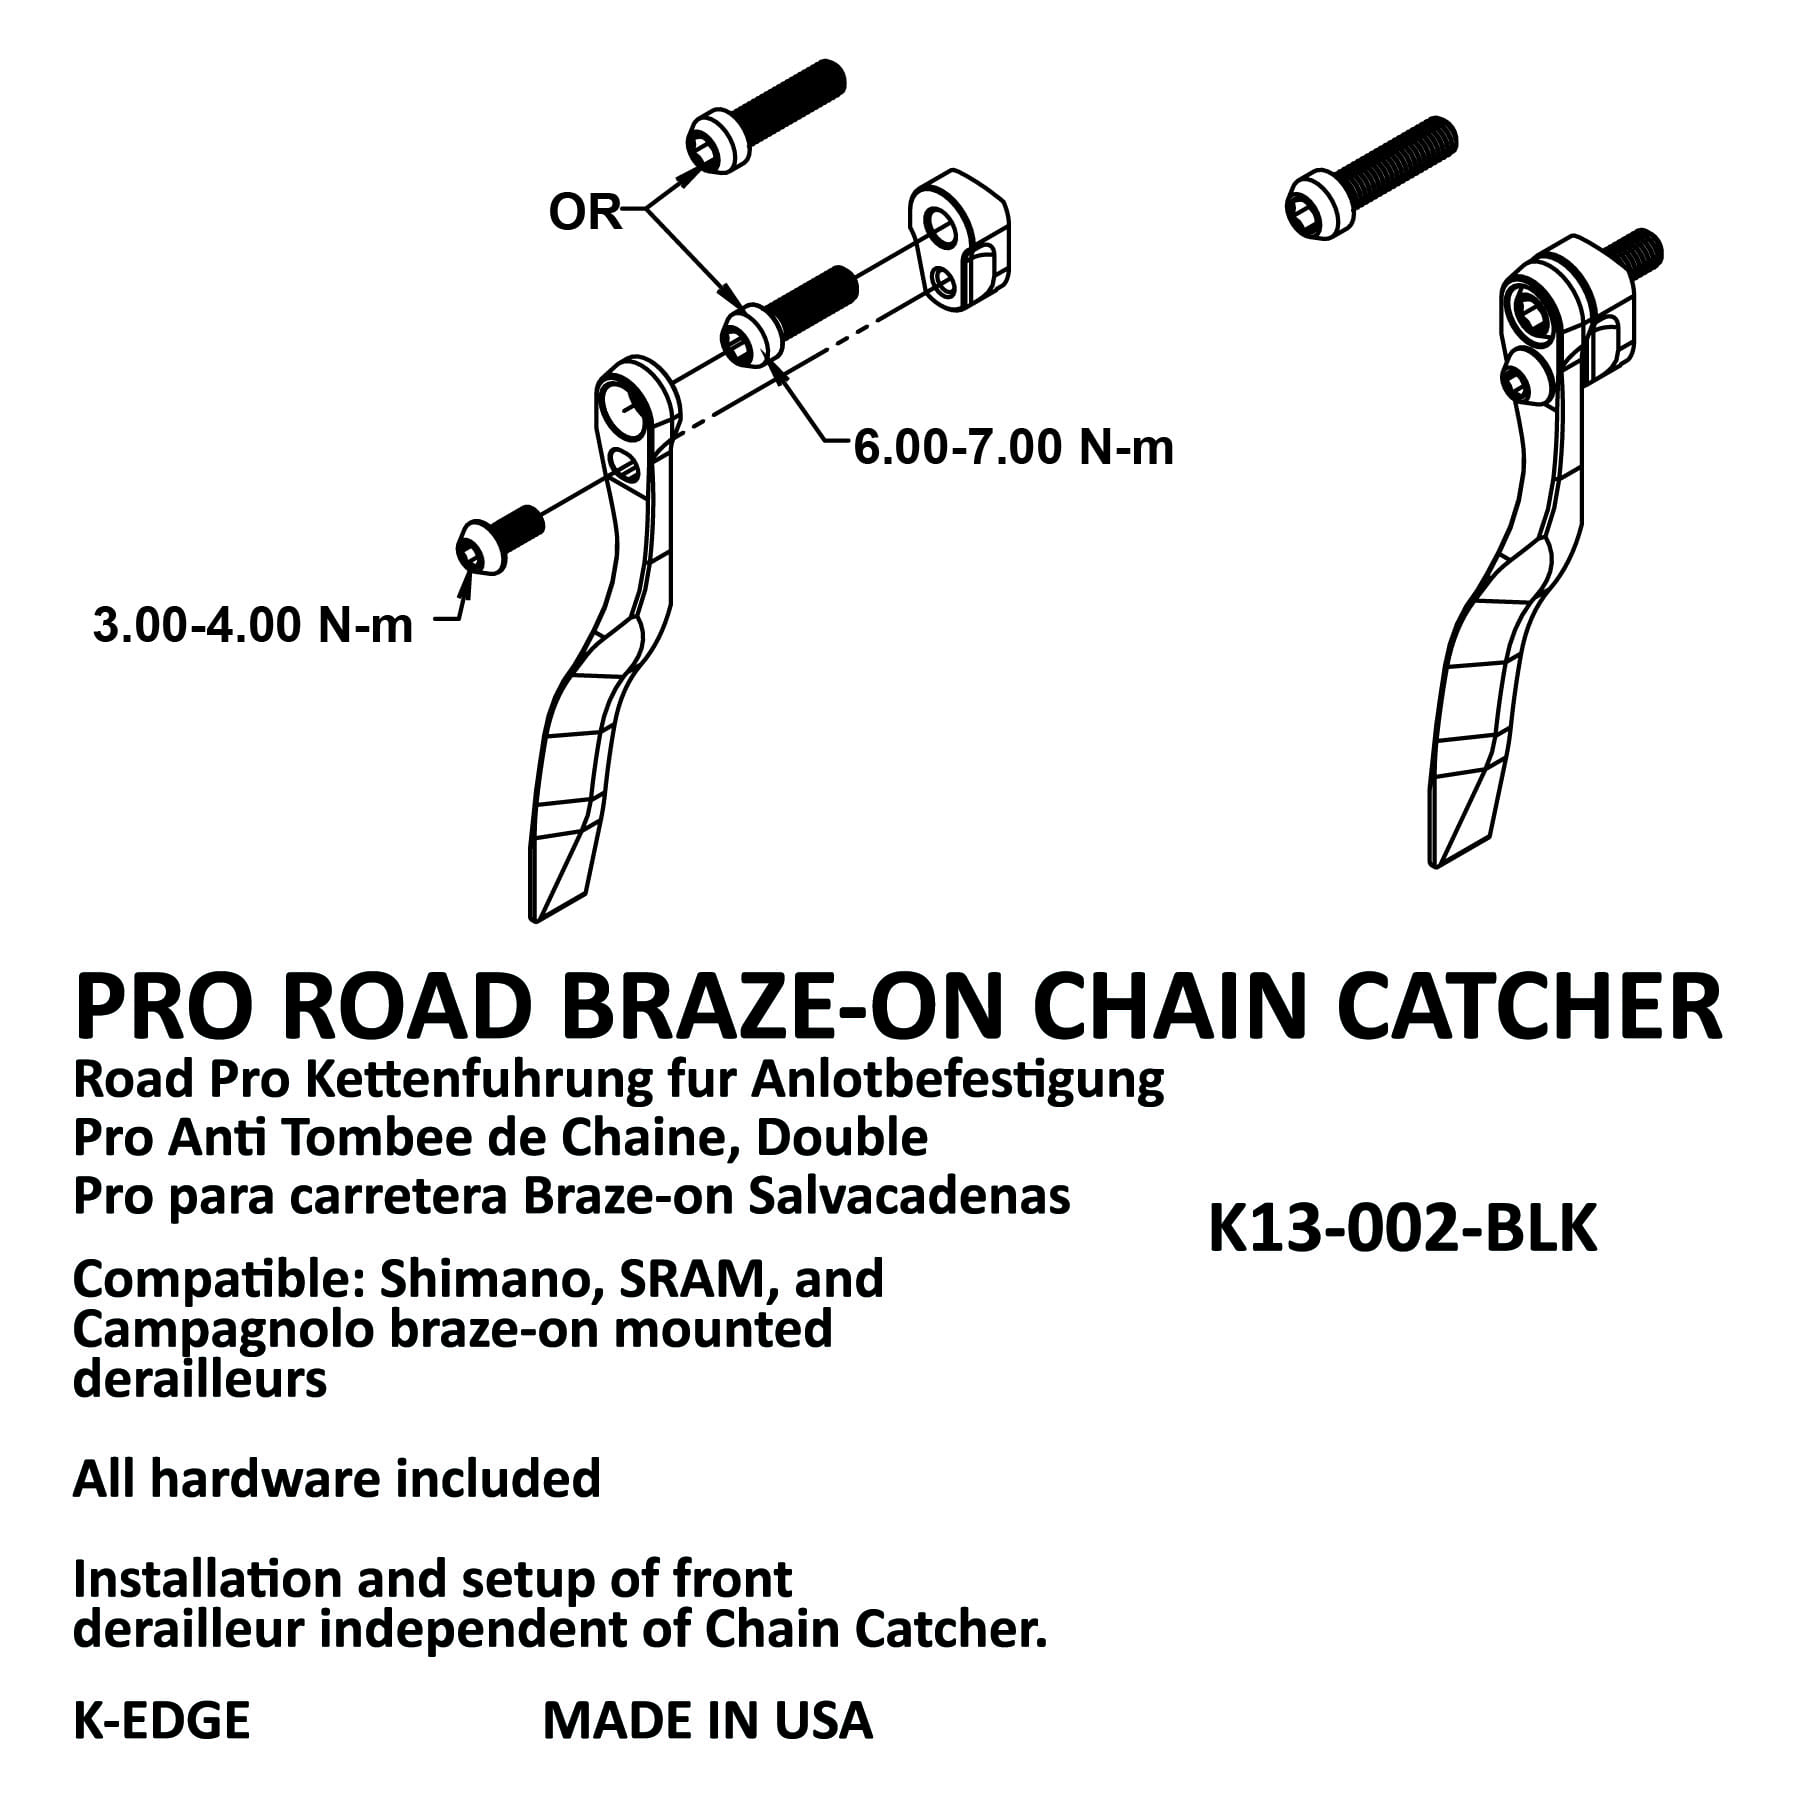 K-EDGE Pro Road Braze-on Chain Catcher Red